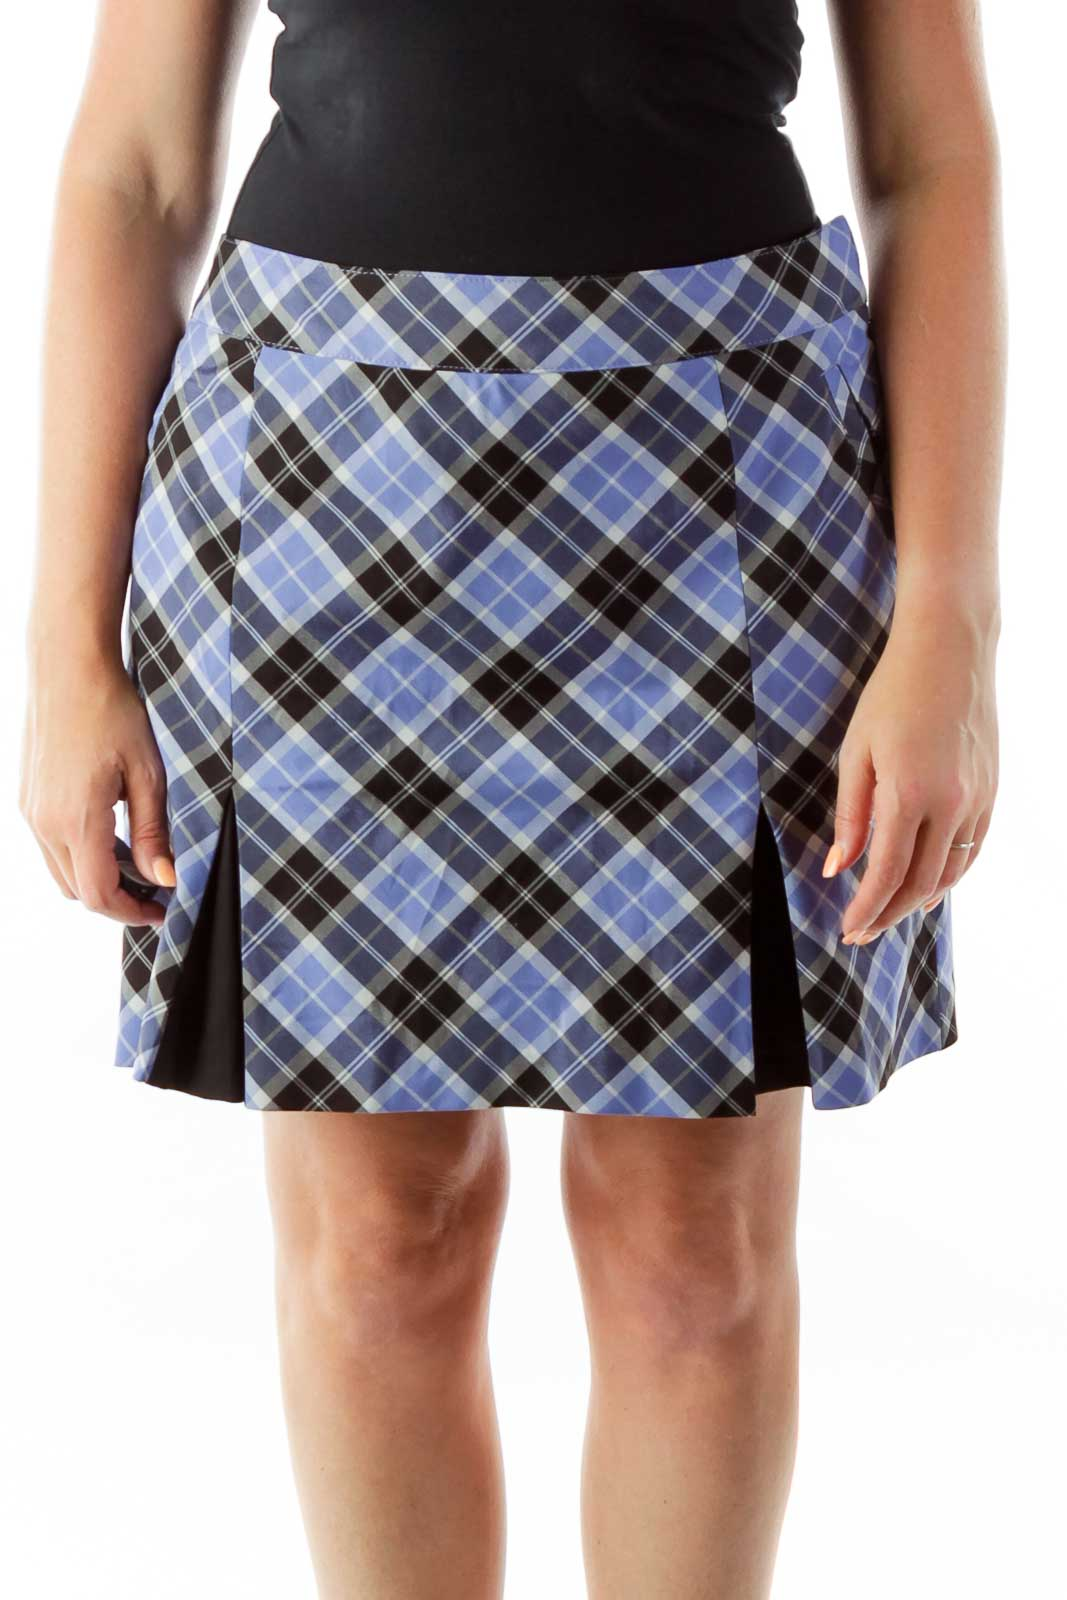 Blue Gray Black Plaid Sports Skort Front